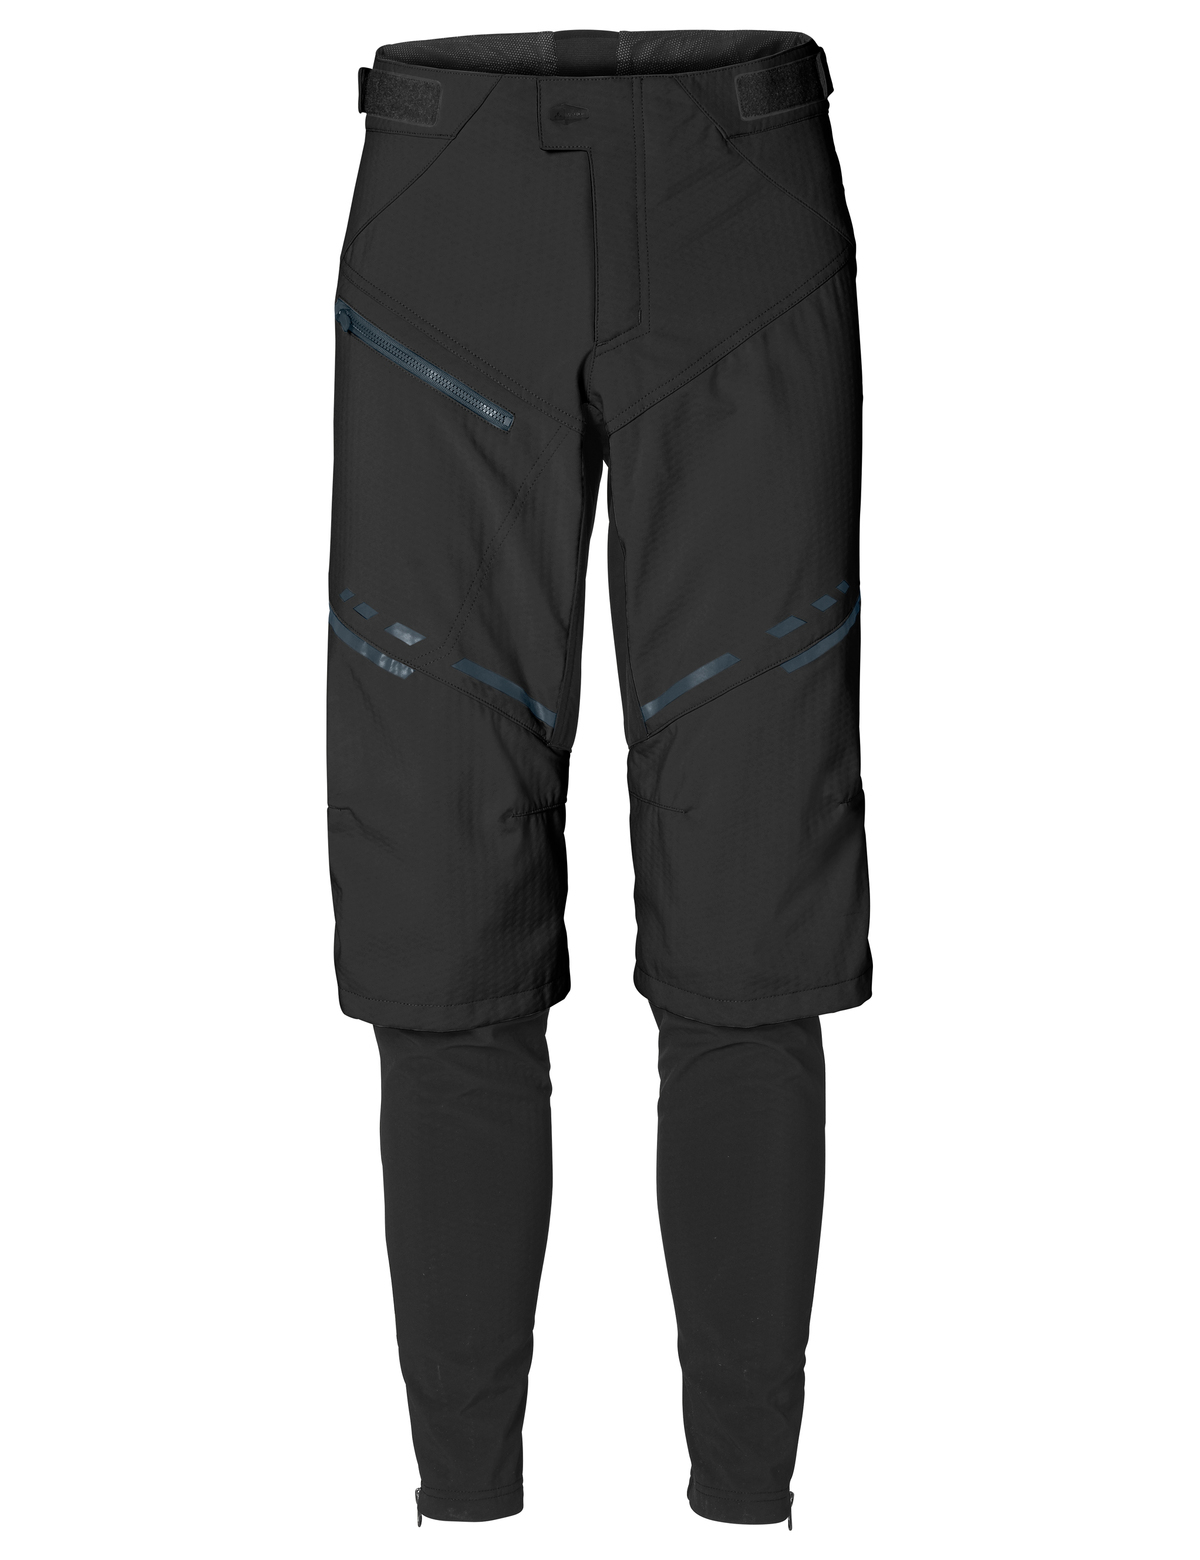 VAUDE Men´s Virt Softshell Pants II black Größe S - schneider-sports